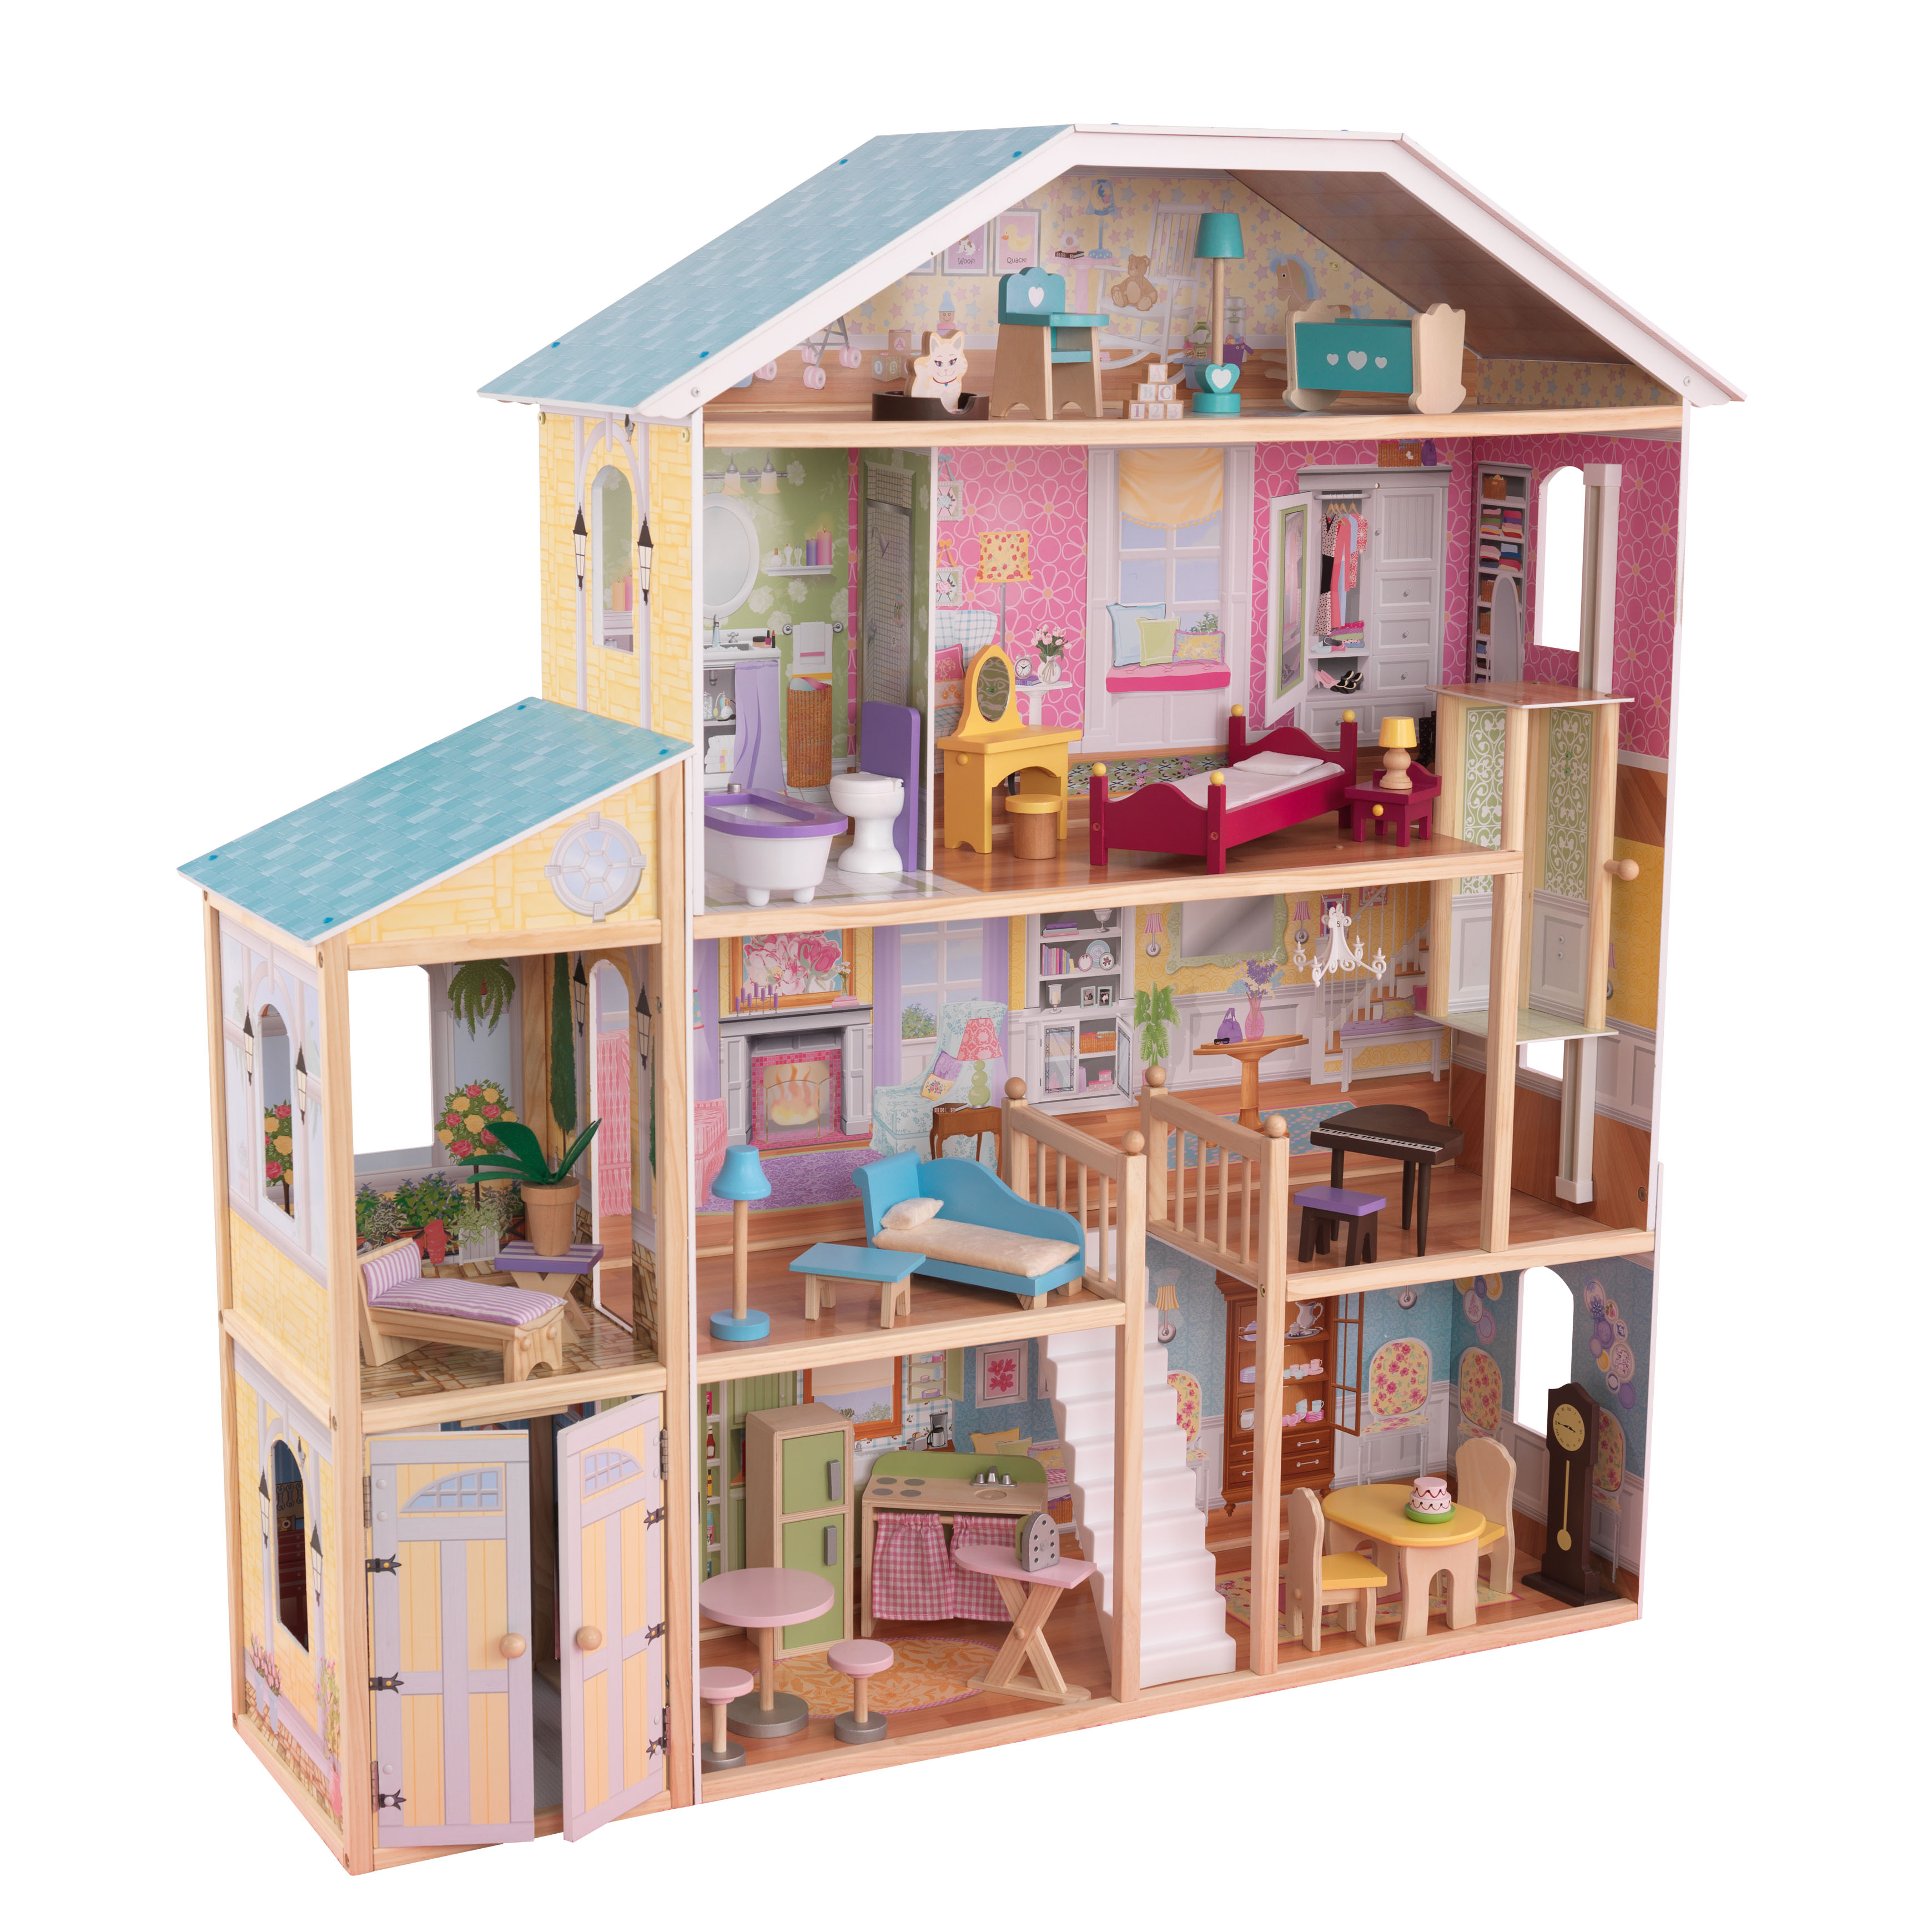 Wiring Dollhouse Instructions Circuit Diagram Symbols Doll House Kidkraft Majestic Mansion With 34 Accessories Walmart Com Rh Troubleshooting